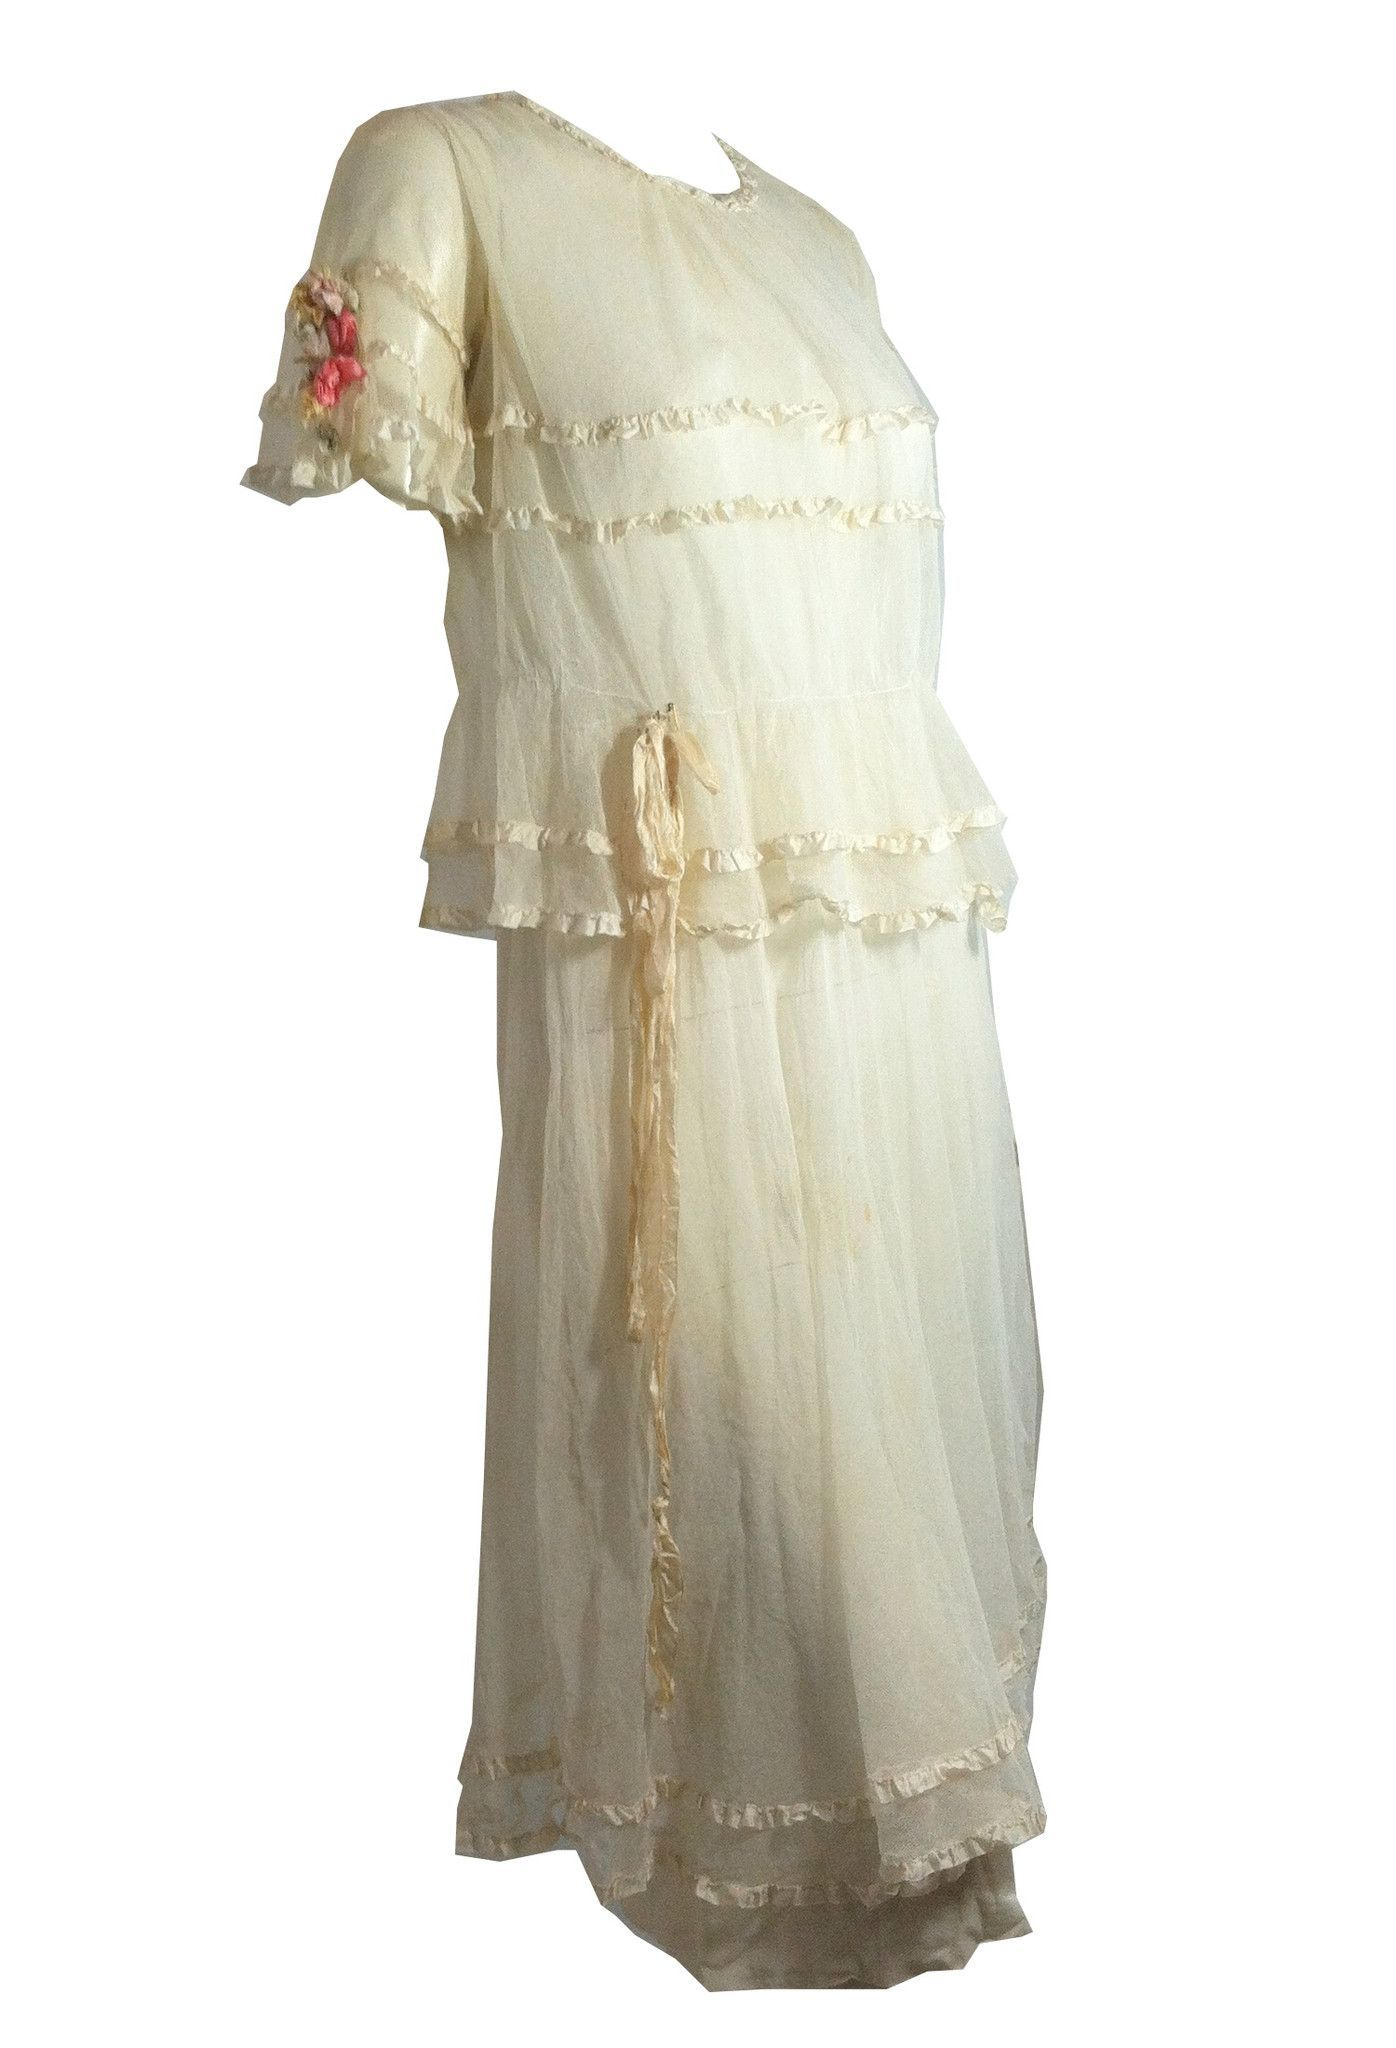 Ribbons and lace summer garden party wedding dress circa s